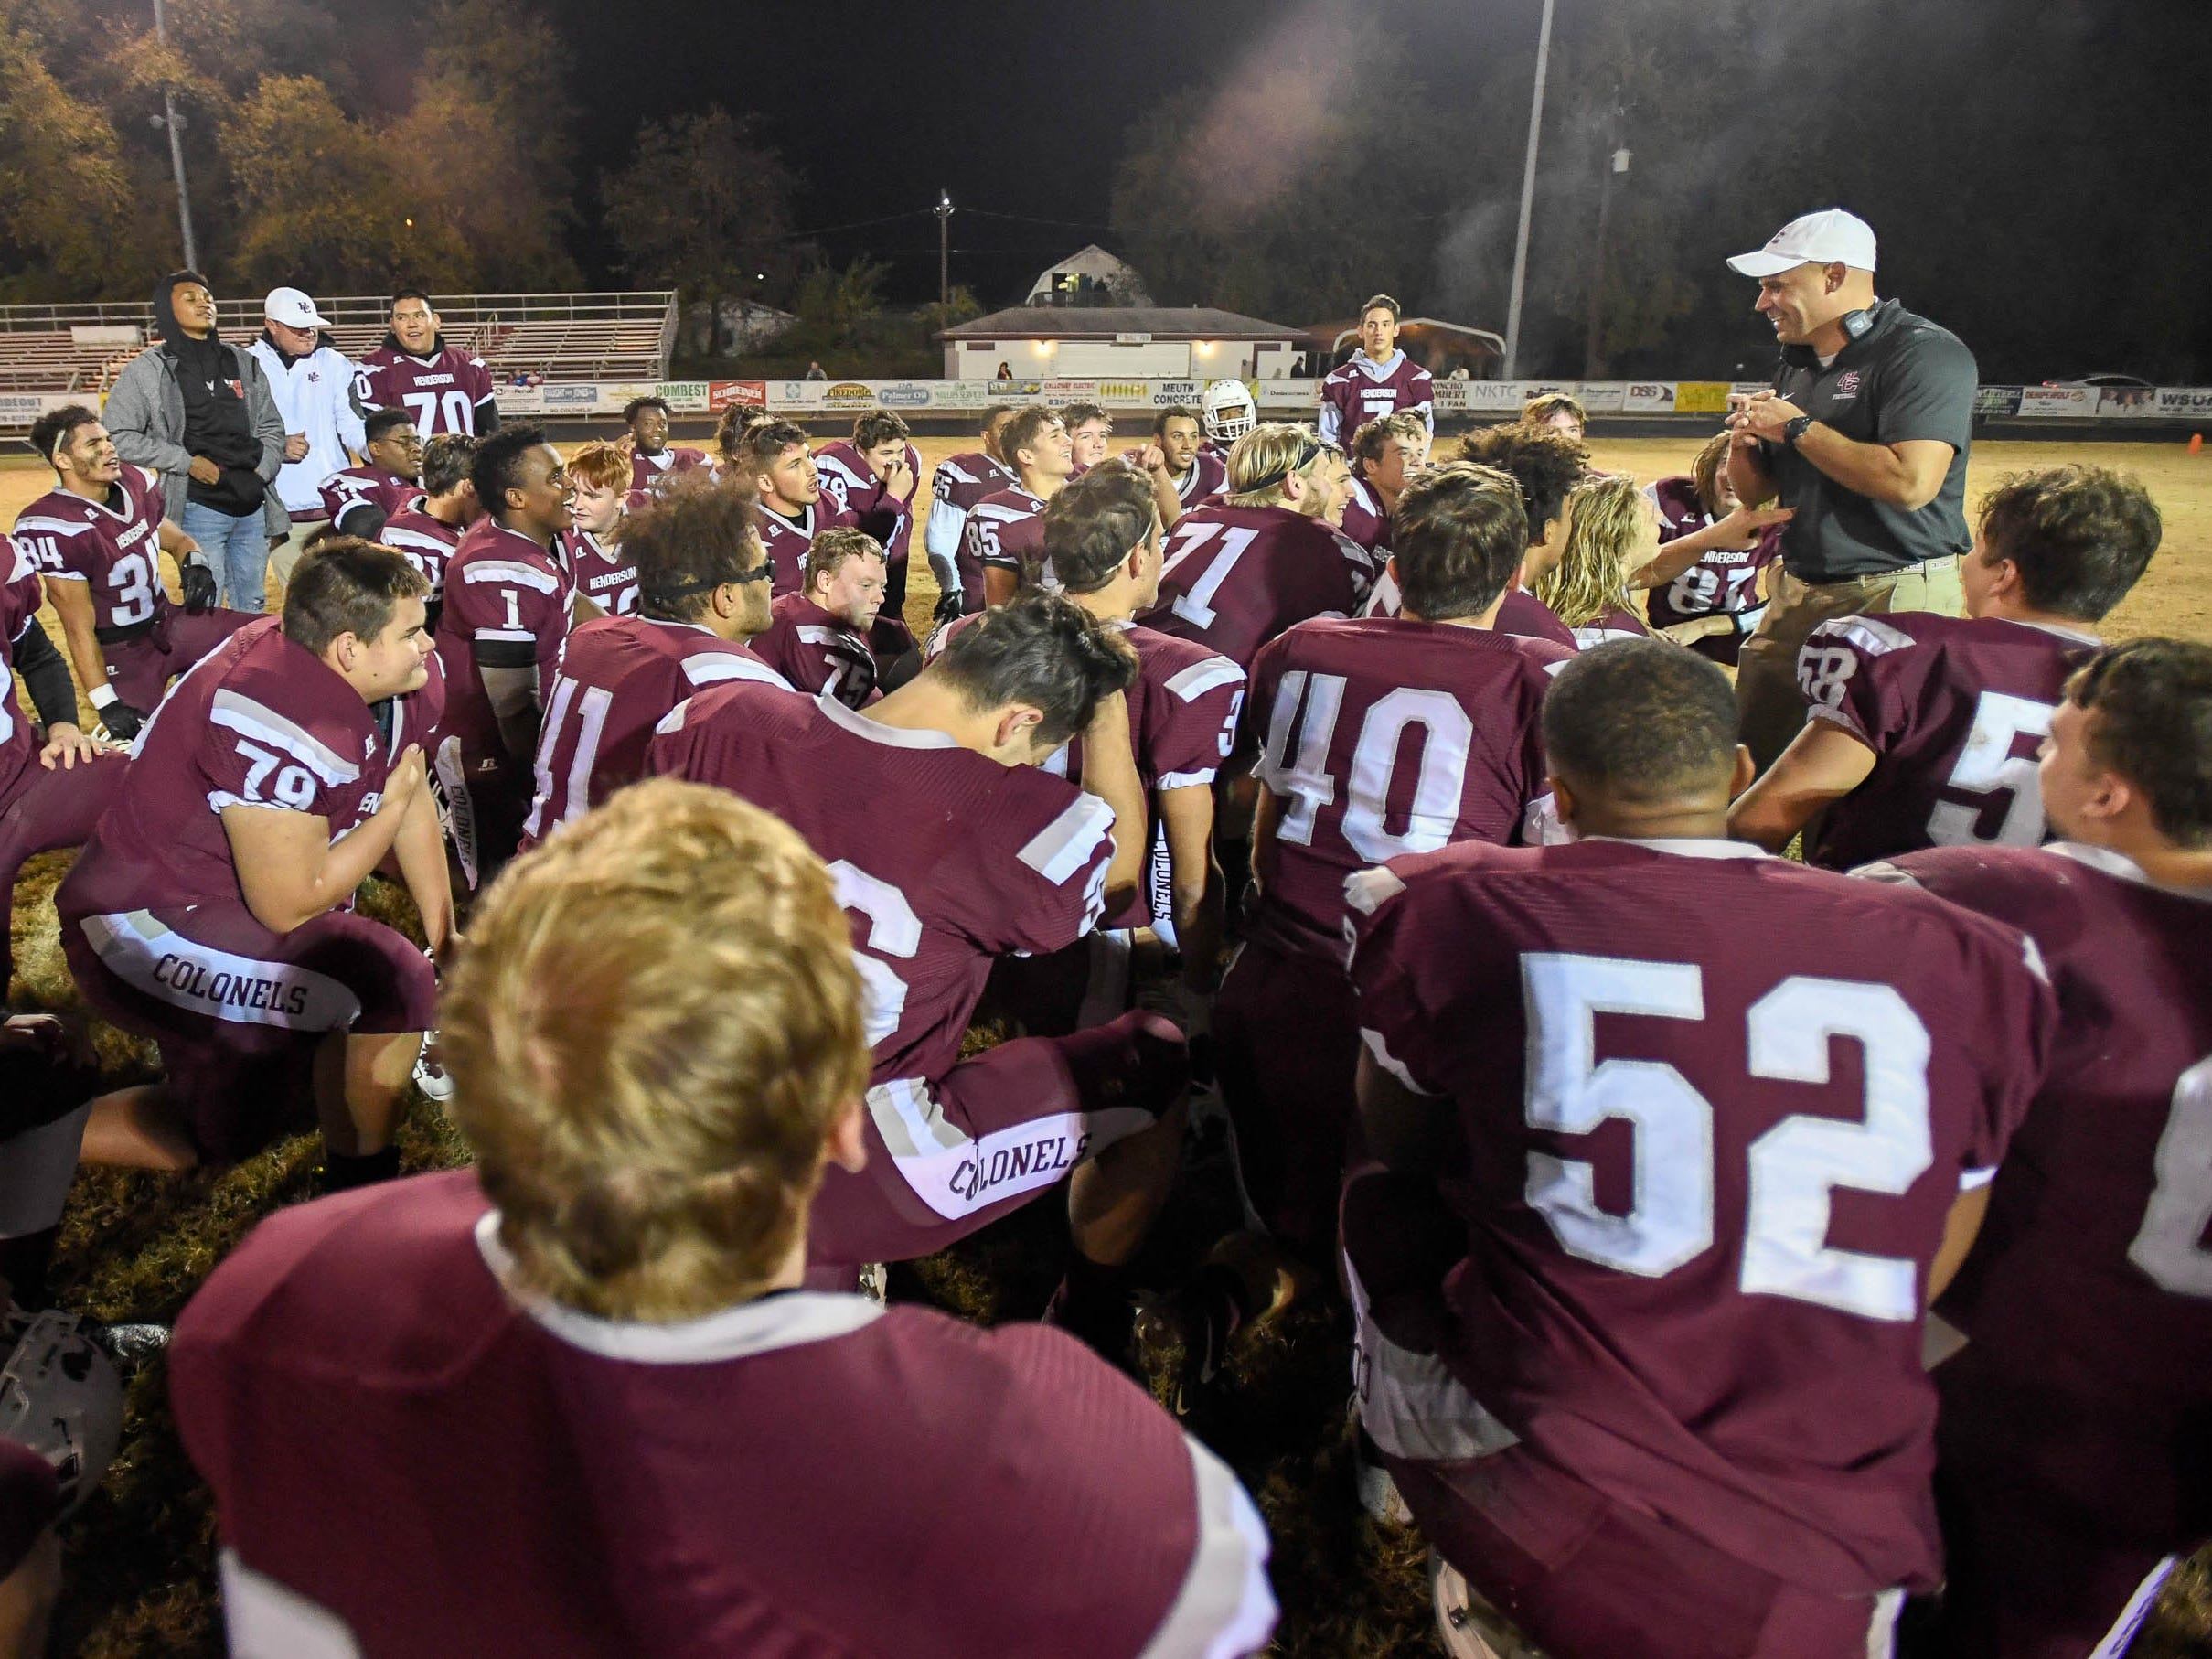 Henderson head coach Josh Boston talks to his team after a 35-0 win over the Louisville Eastern Eagles in the first round of the 6-A playoffs at Colonel Field Friday, November 2, 2018.